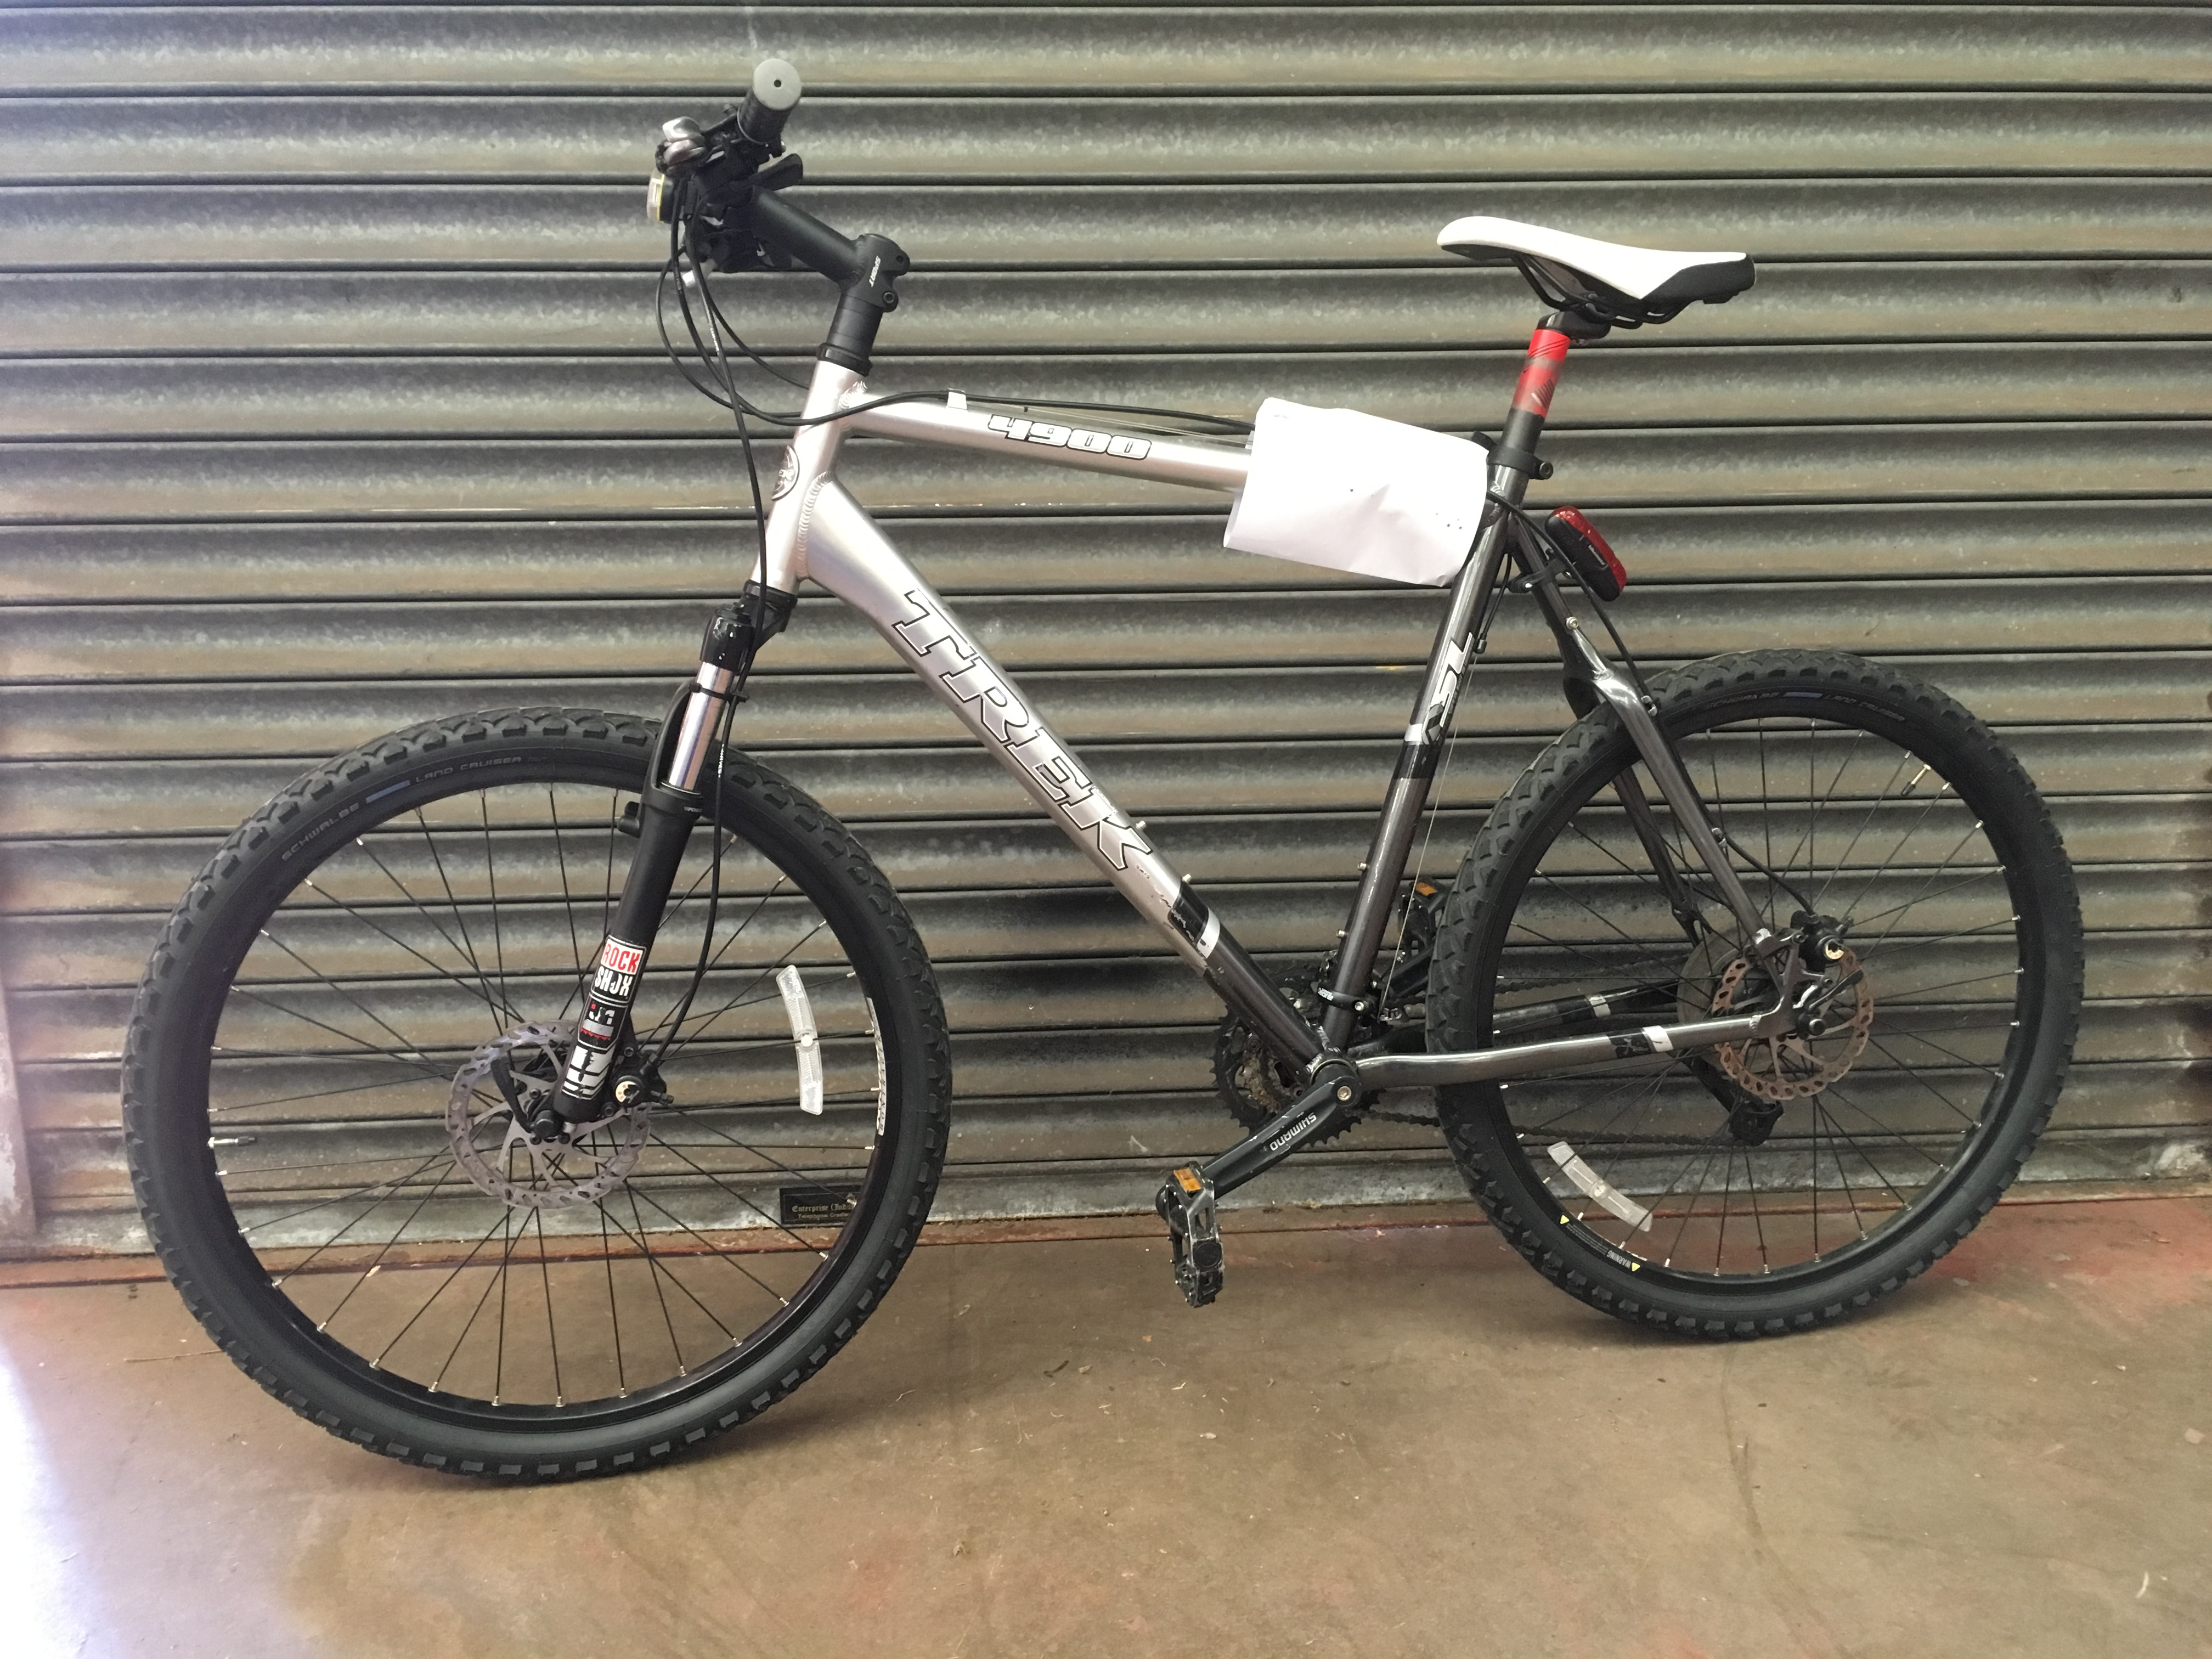 Trek 4900 for sale - Lot 52 Police Trek 4900 Mountain Bike Bicycle No Reserve